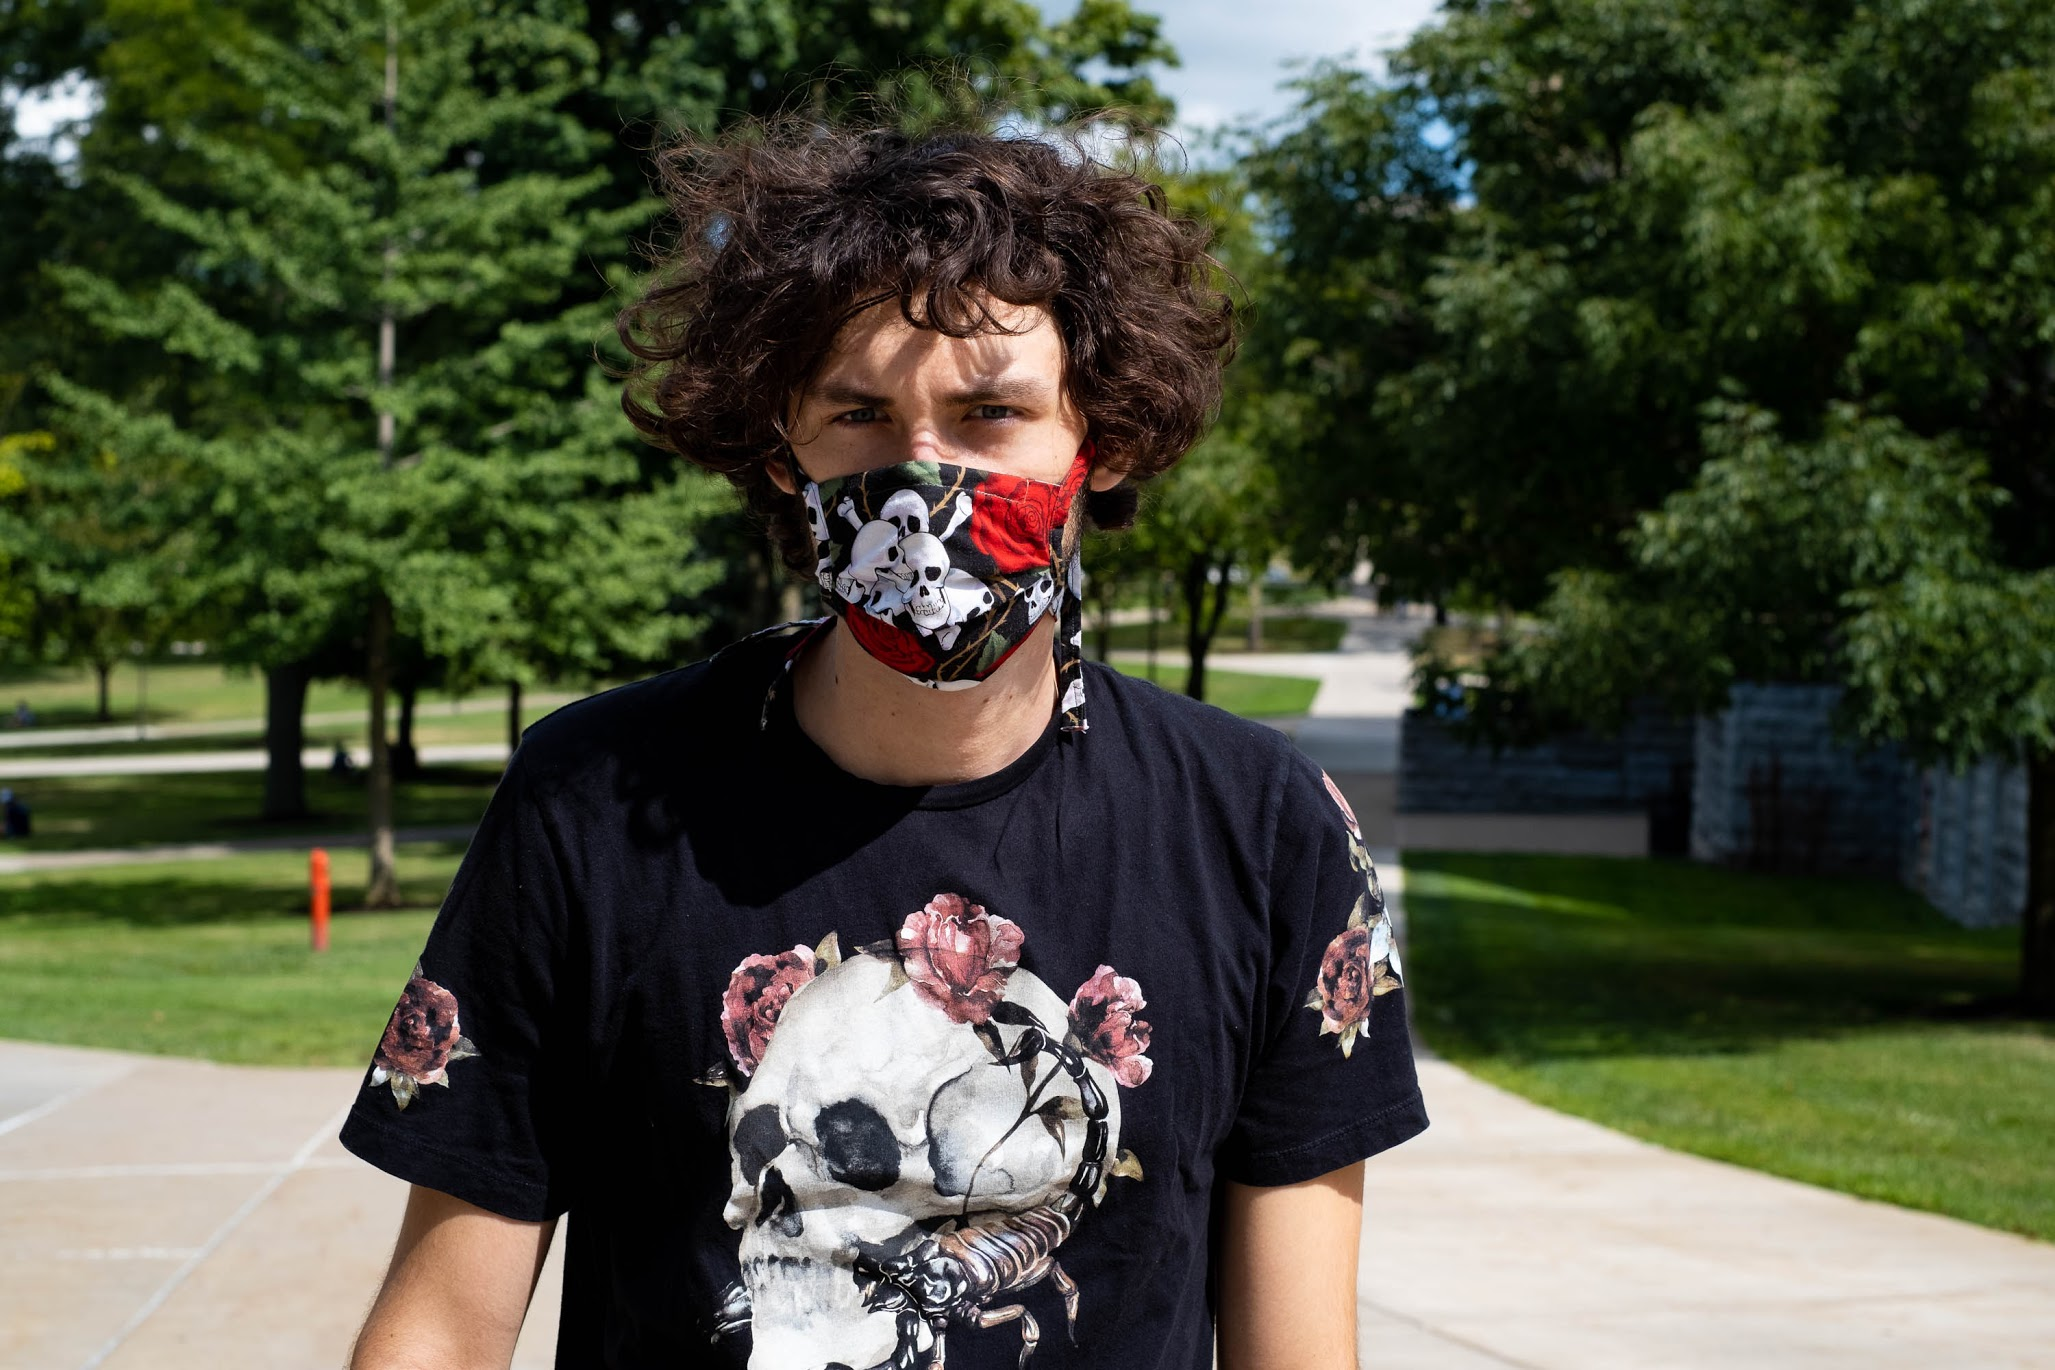 """For engineering & computer science sophomore Griffin Maffioli, wearing a mask is just another way to accessorize. """"It's just about finding something that matches what you already like to wear. It's just adding one more piece of cloth to your outfit."""" Photo by Kennedy Smith."""